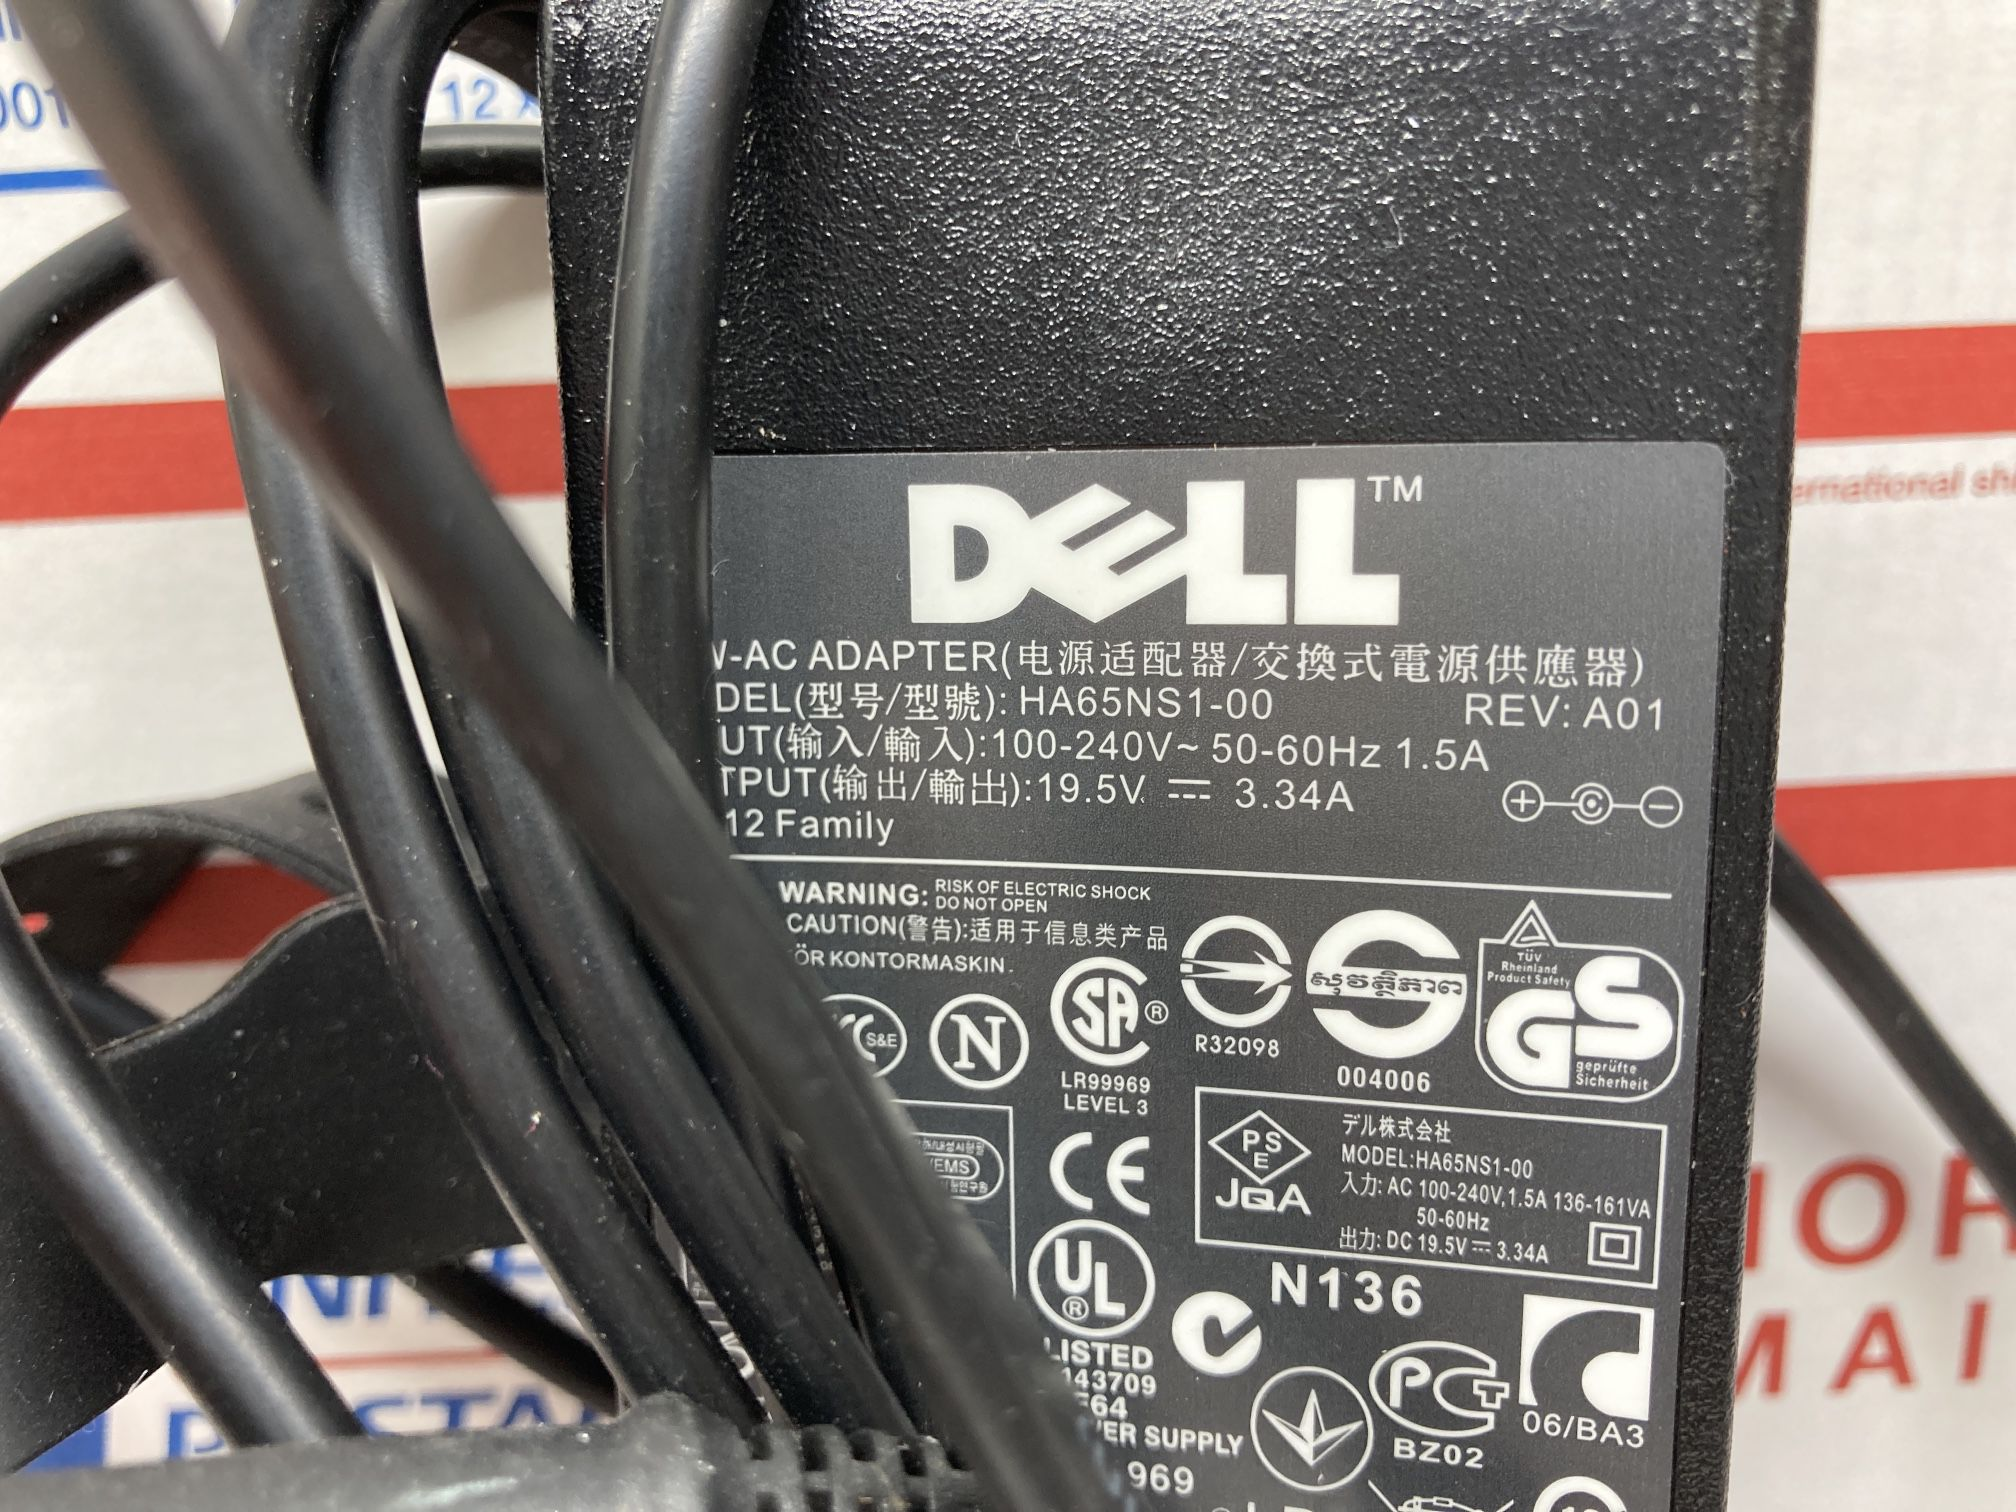 Dell Authentic OEM Origina Wall Charger - Tested, Works Perfect! For Older Model Dell Laptops